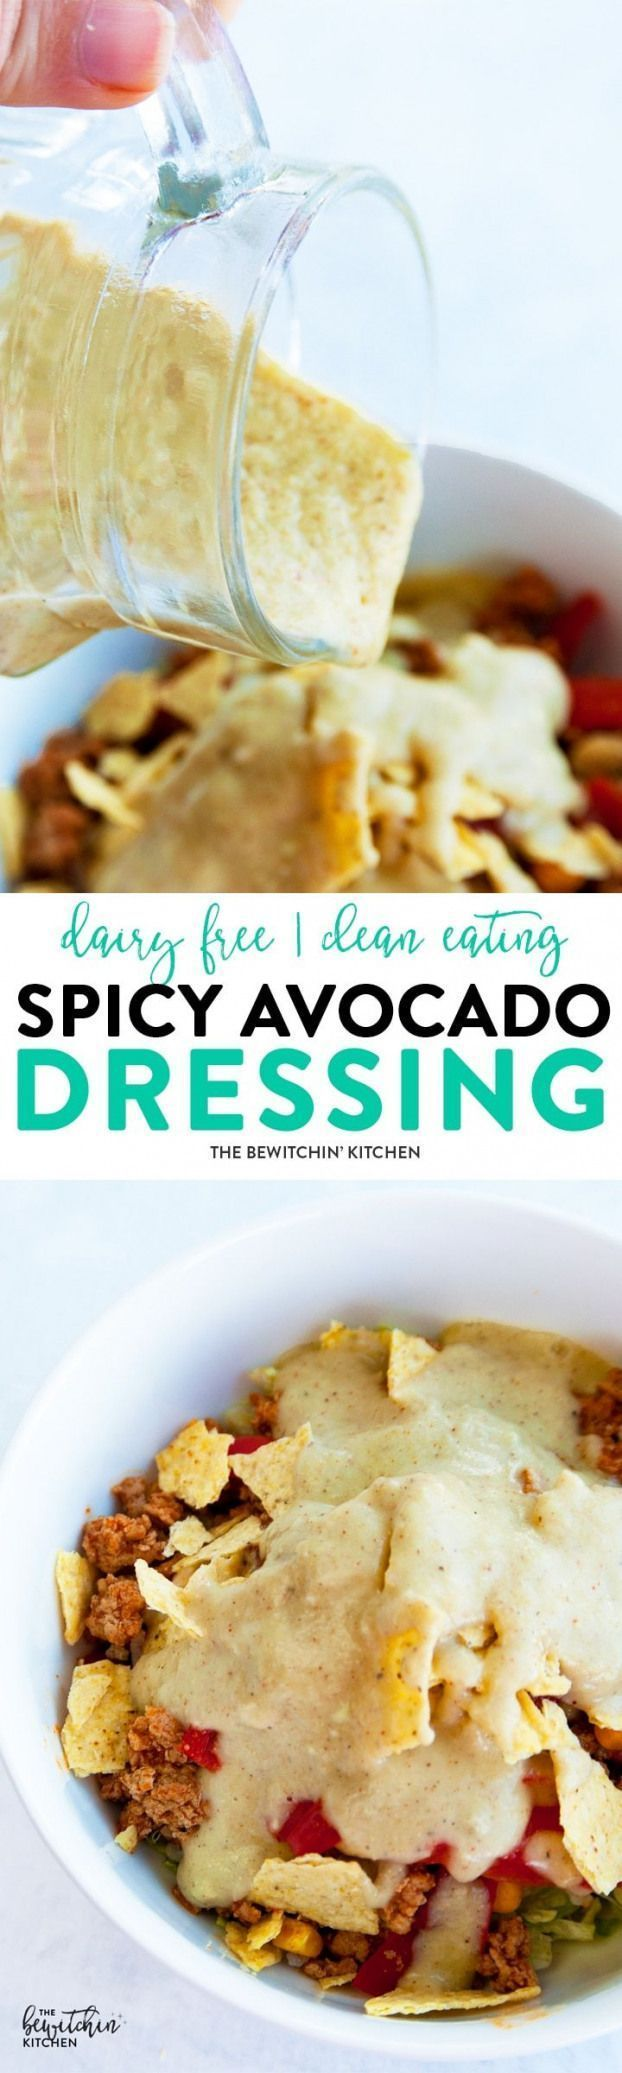 Spicy Avocado Dressing easy homemade salad dressing recipe that's creamy yet dai...- Spicy Avocado